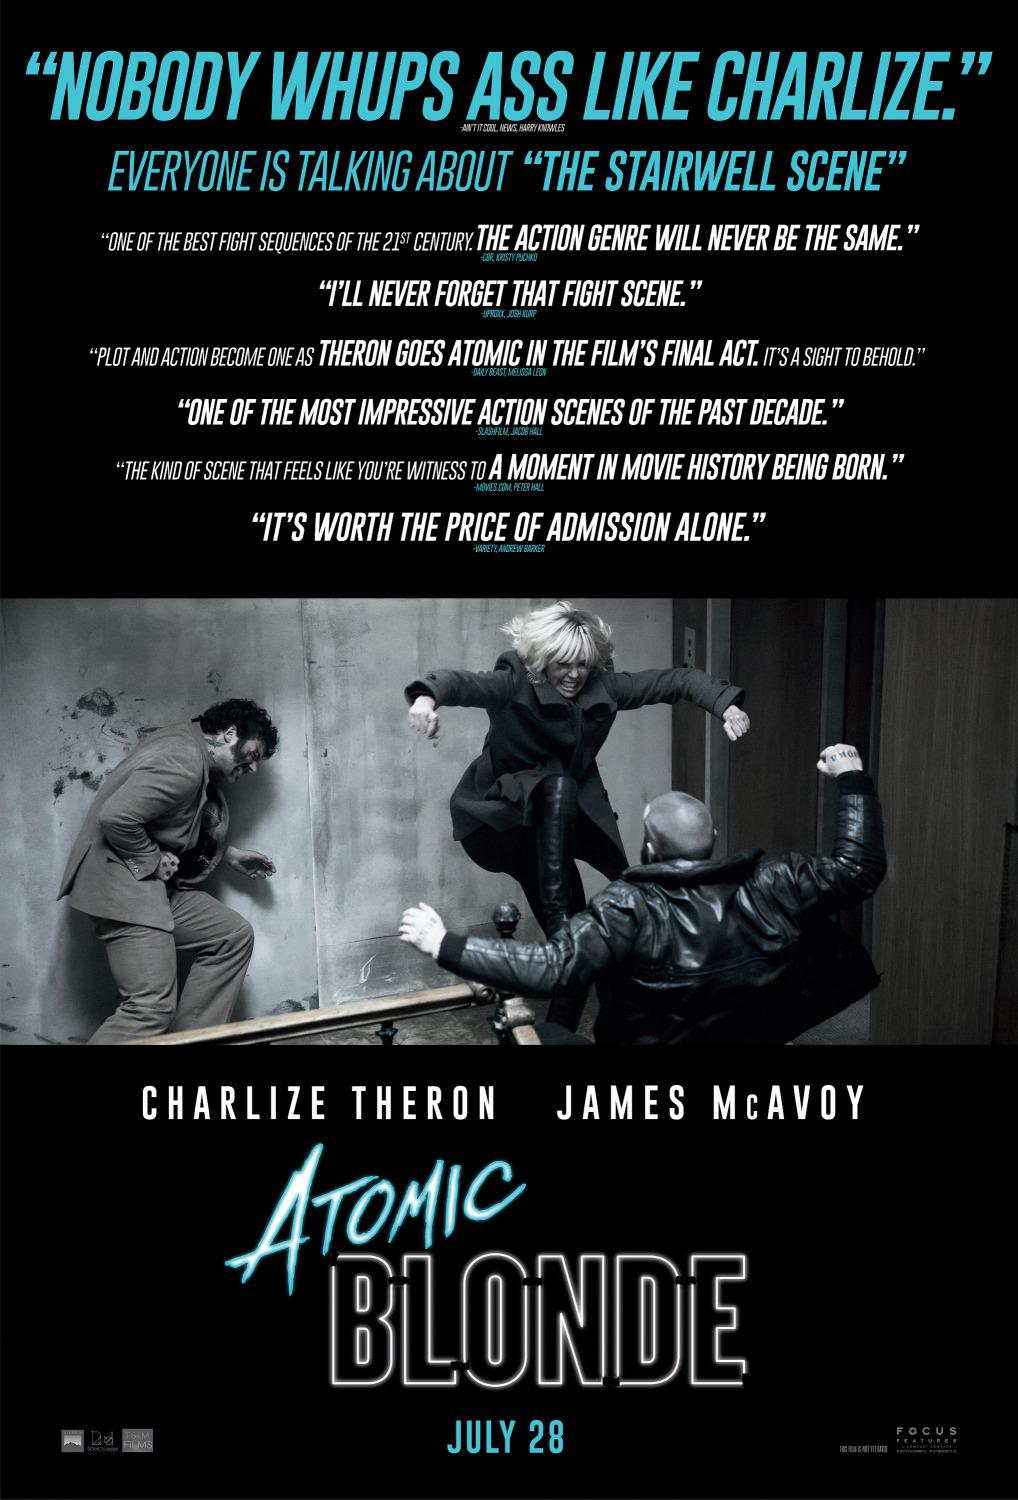 Atomic Blonde - Spy Story Film - Charlize Theron - poster - Nobody whups ass like Charlize - James McAvoy